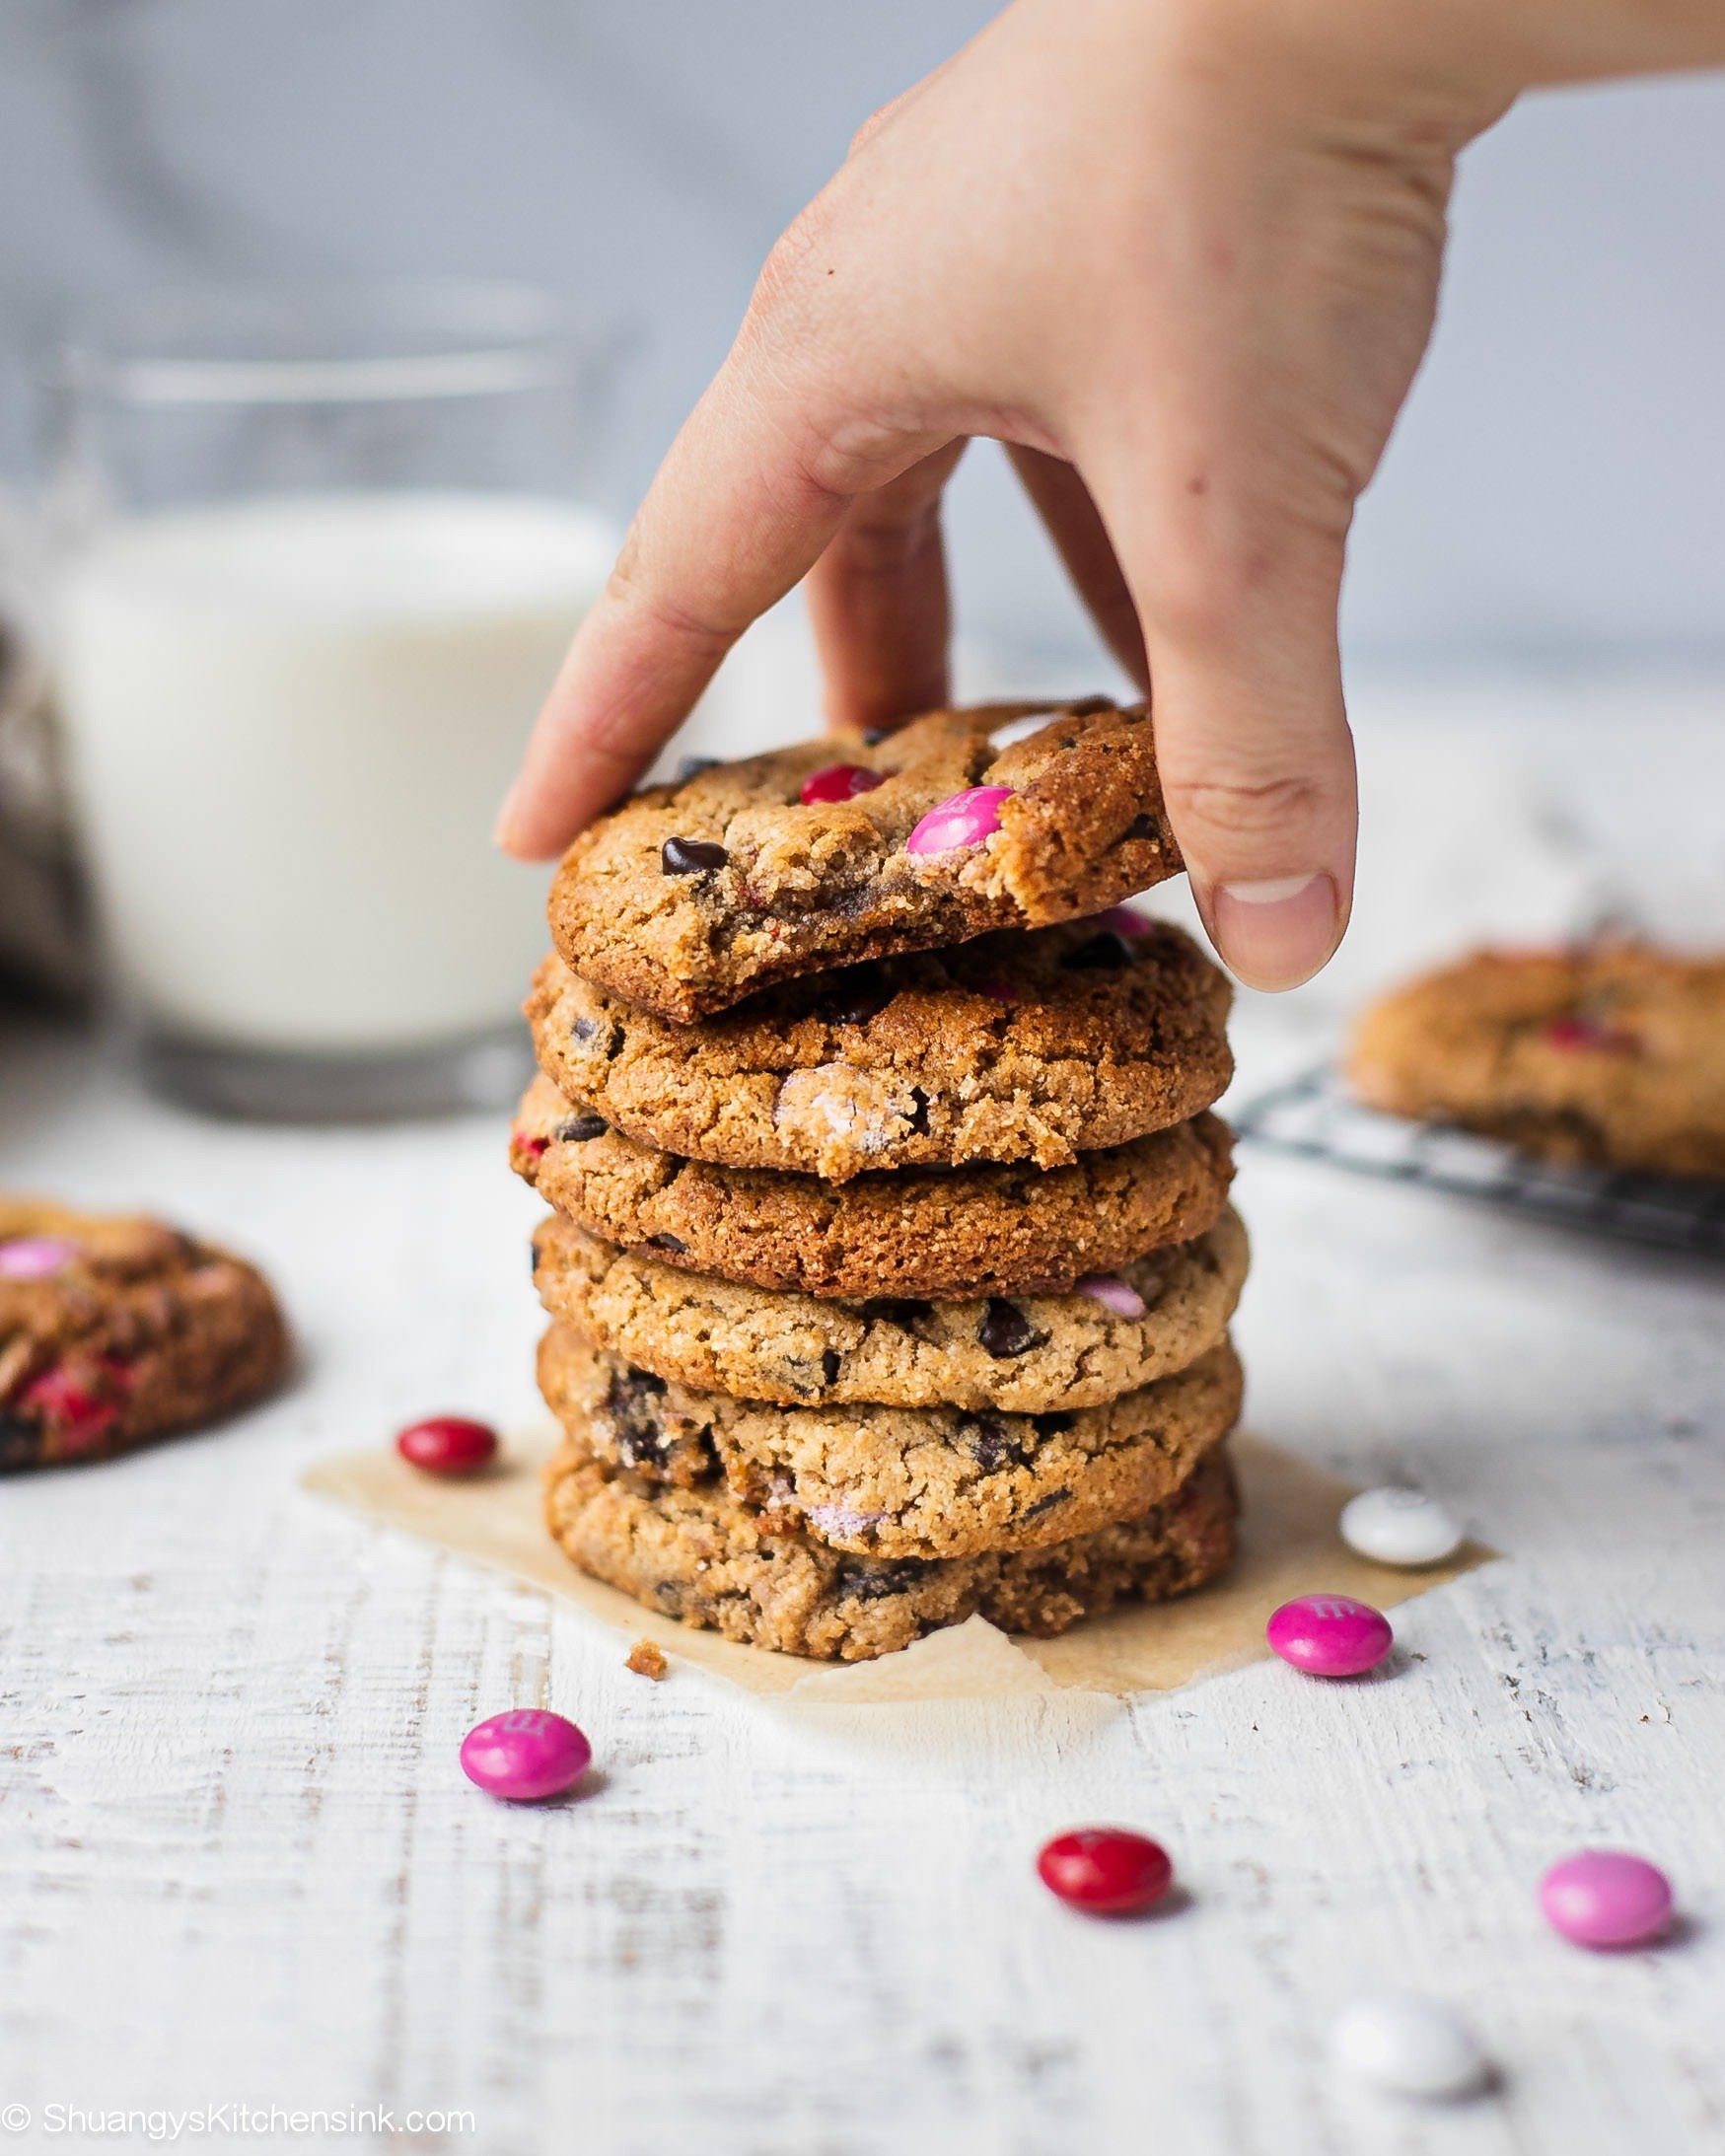 A stack of eggless chocolate chip cookies with M&Ms that can be made vegan, keto and paleo. Perfect healthy cookies for Valentine's Day. A hand is reaching to grab the top eggless chocolate chip cookies. There are extra M&Ms on the table.